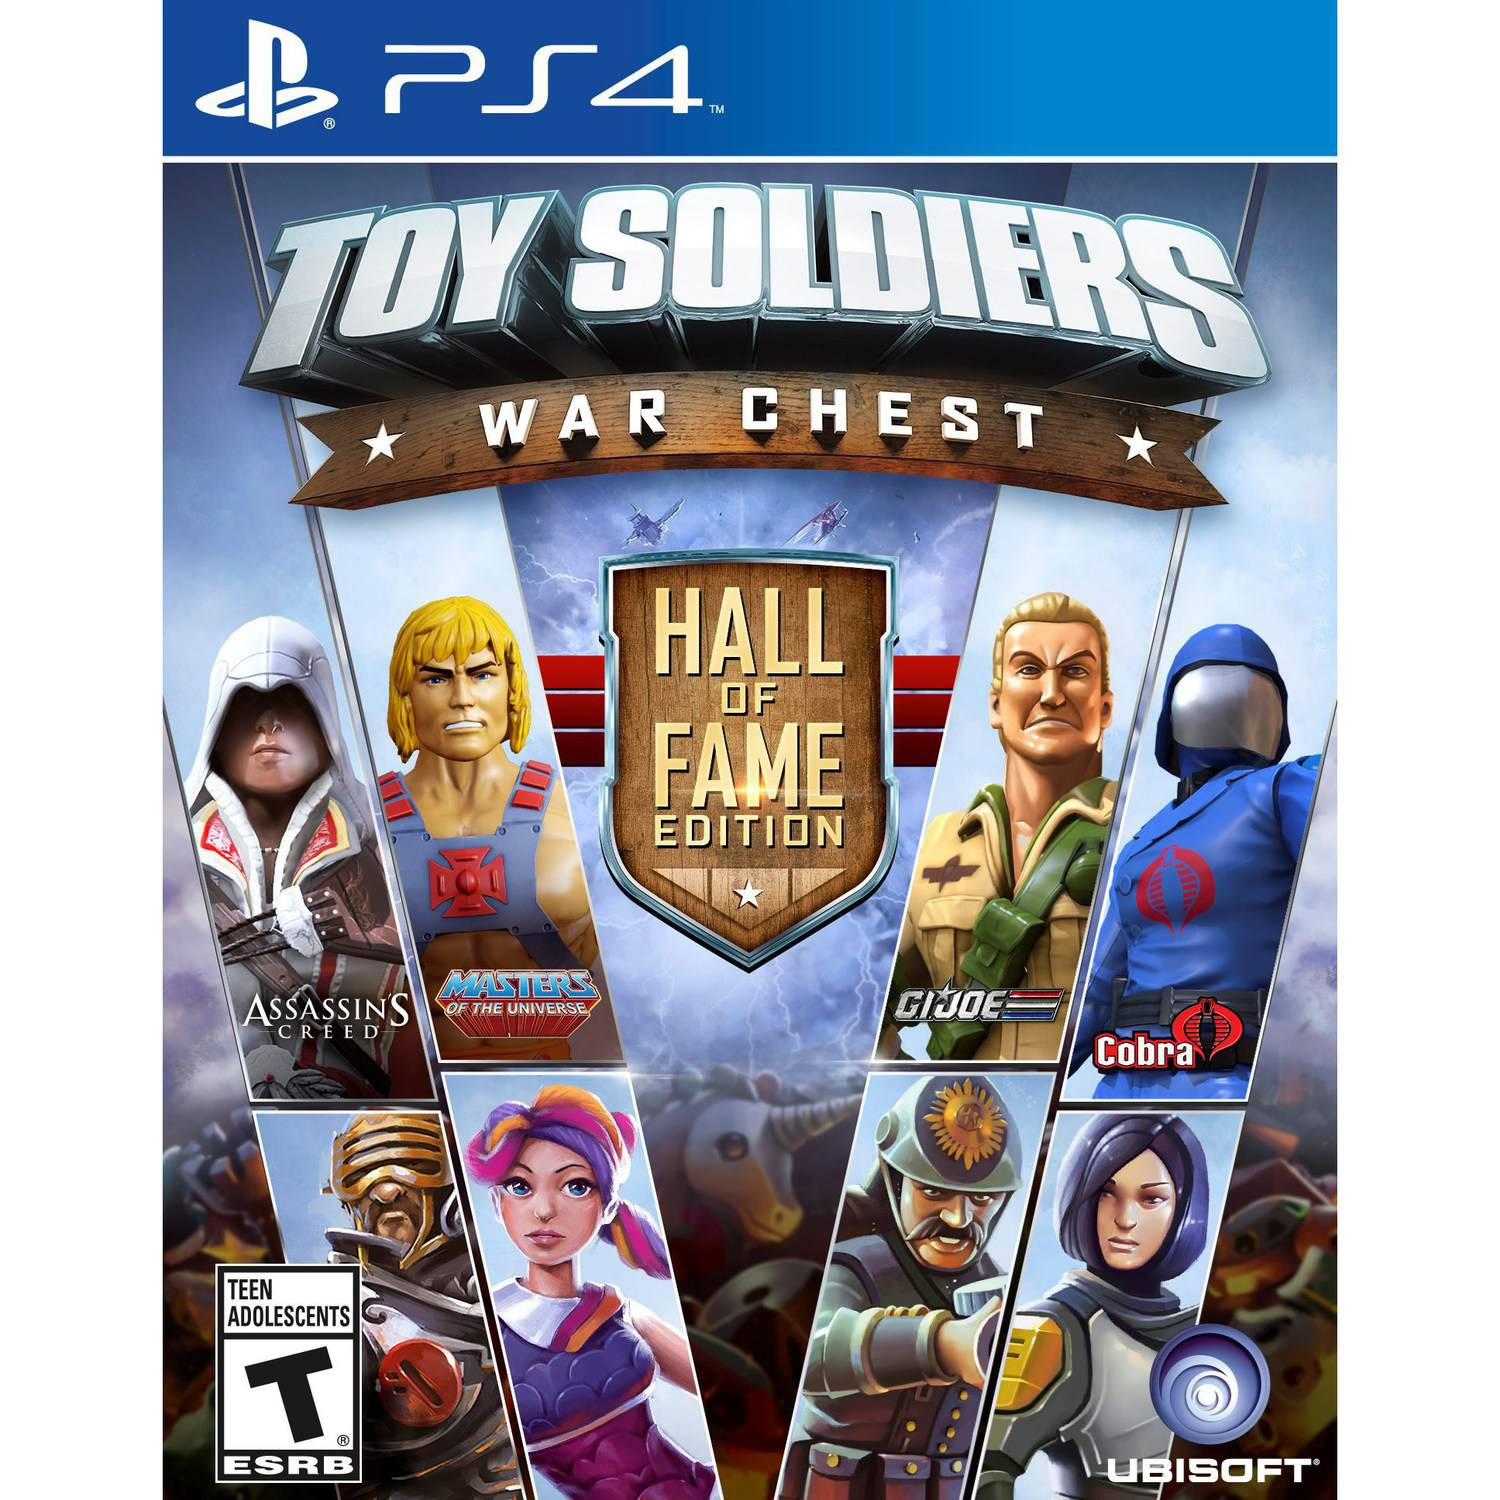 Toy Soldiers: War Chest Hall of Fame Edition, Ubisoft, PlayStation 4, 887256001339